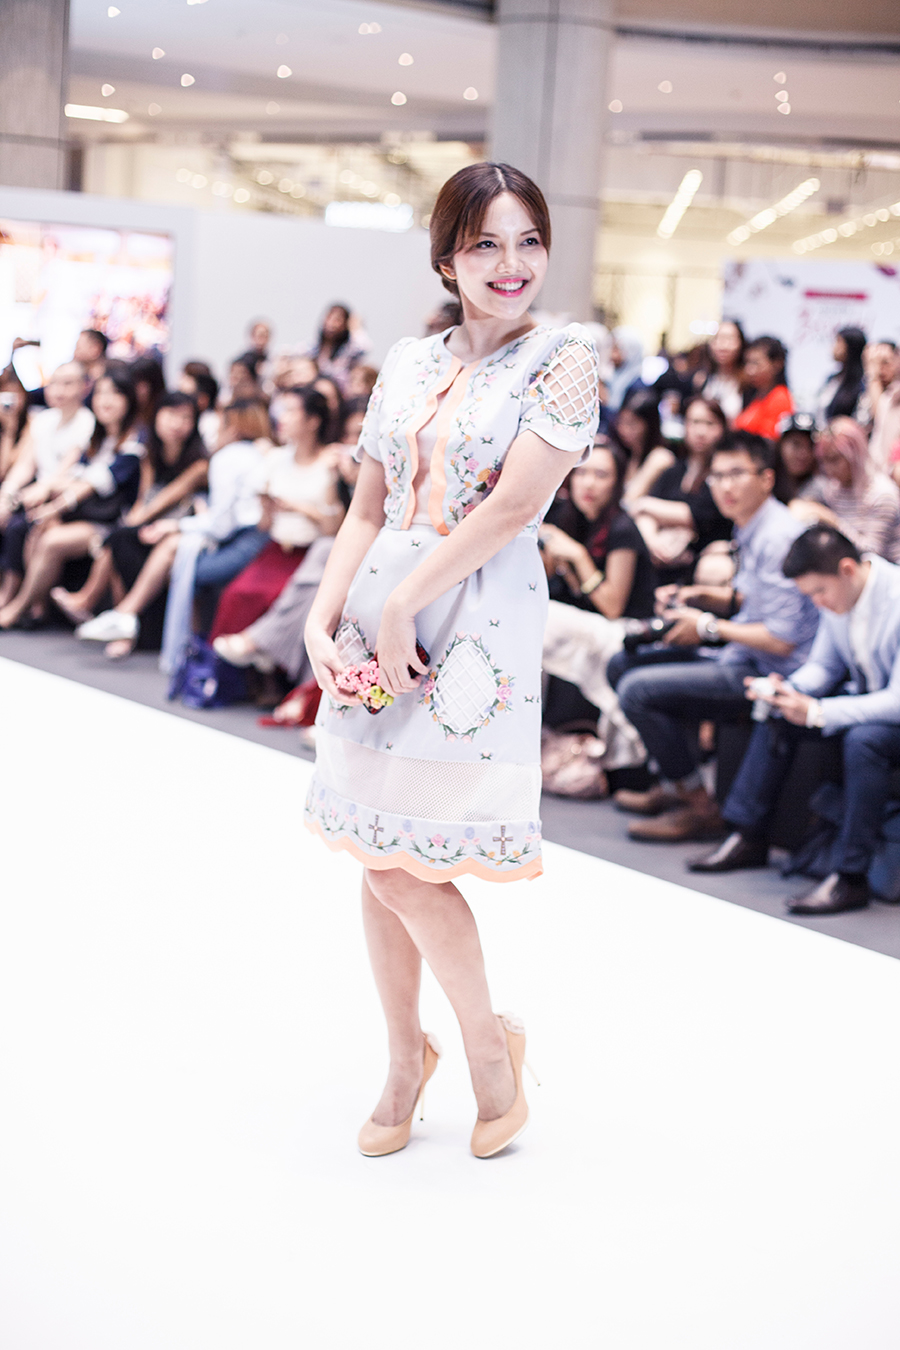 Pretty Woman Catwalk at Clozette Style Party 2016 in Suntec City. #ClozetteStyleParty